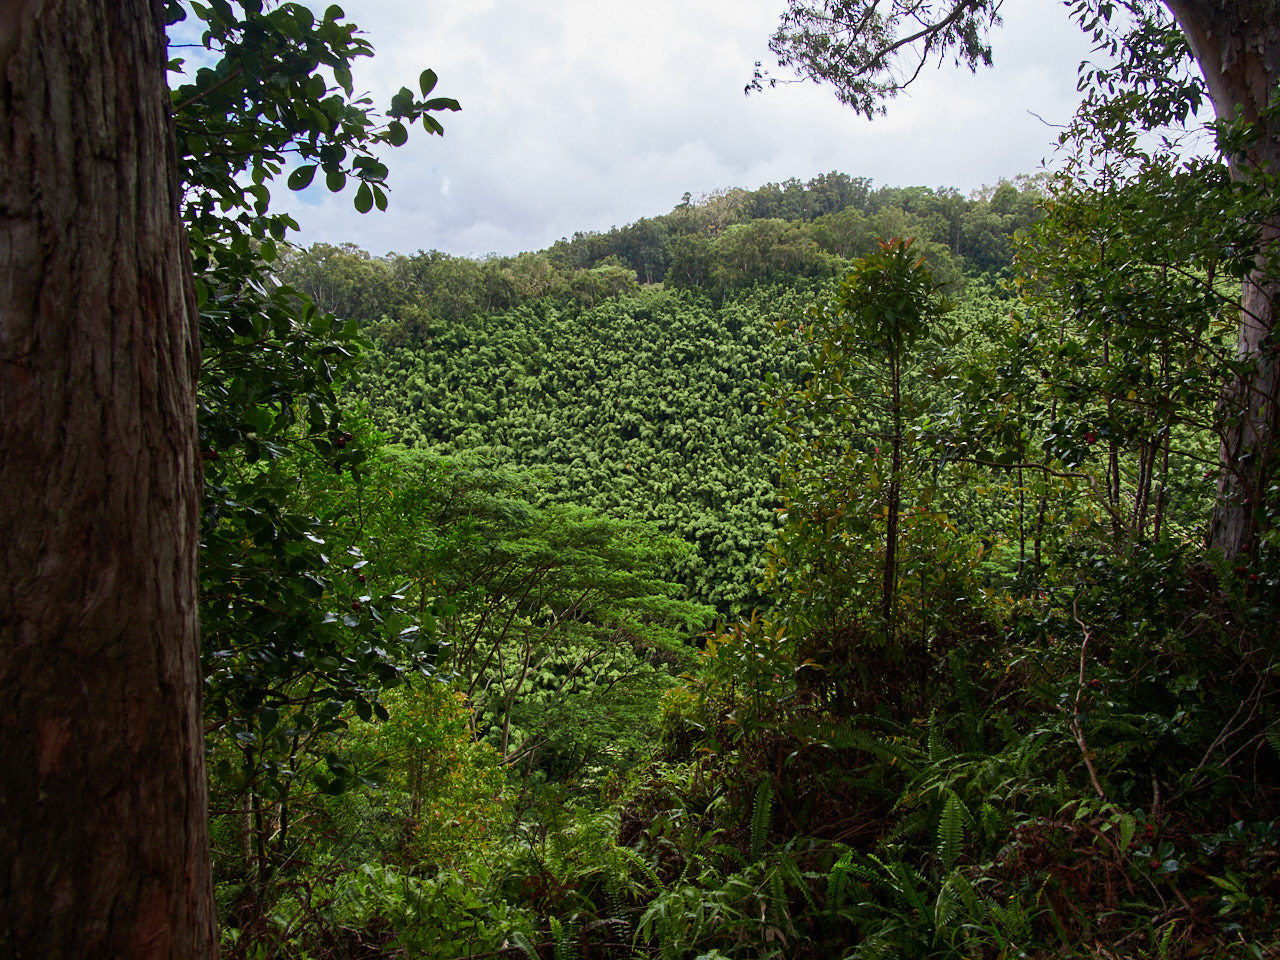 The views that do exist are of lush, tropical forests.